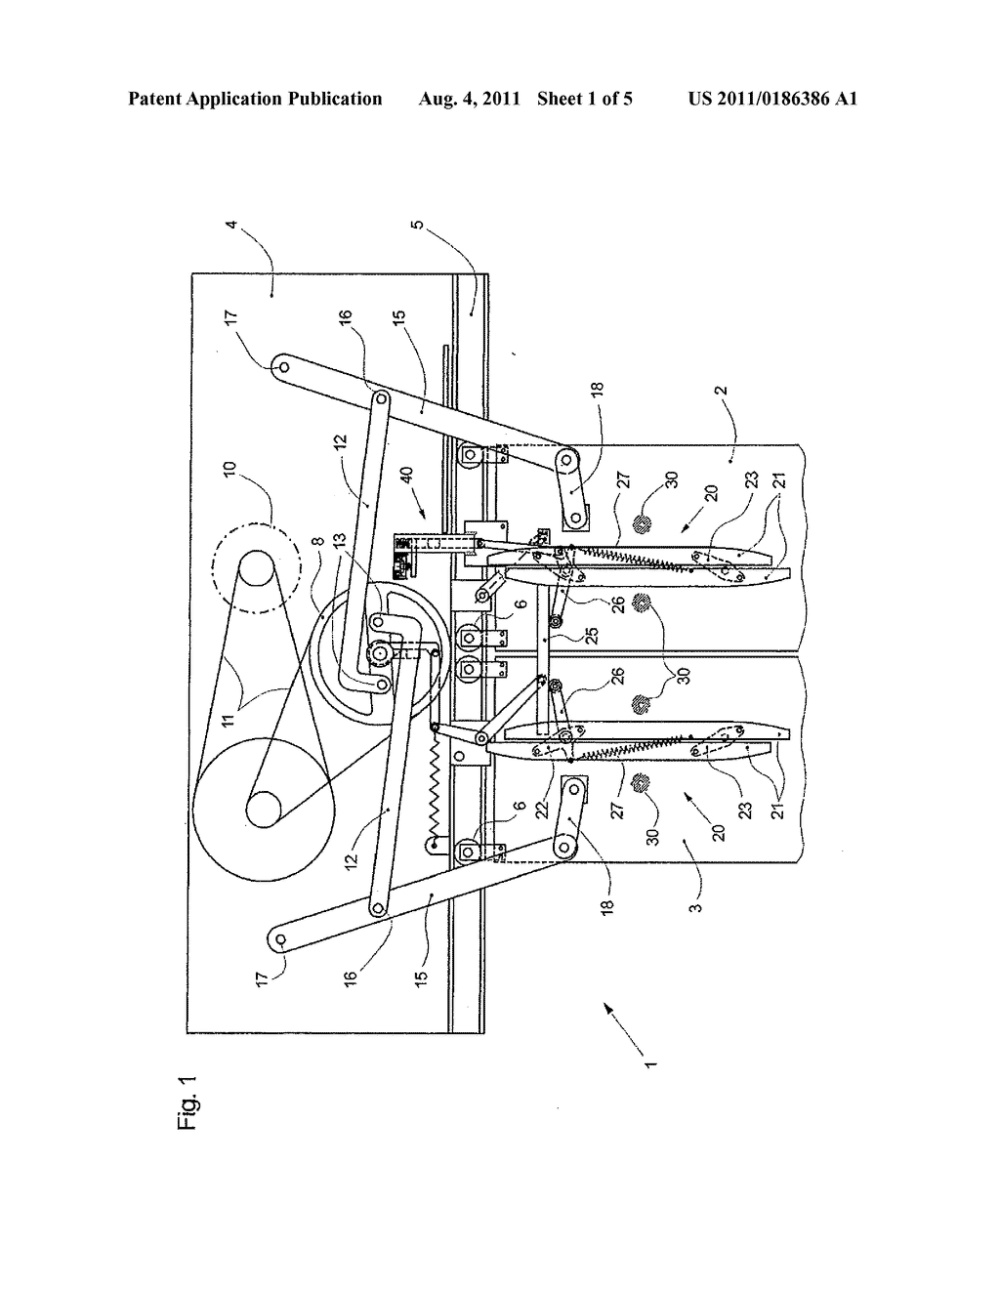 medium resolution of elevator door system comprising a car door locking mechanism diagram schematic and image 02